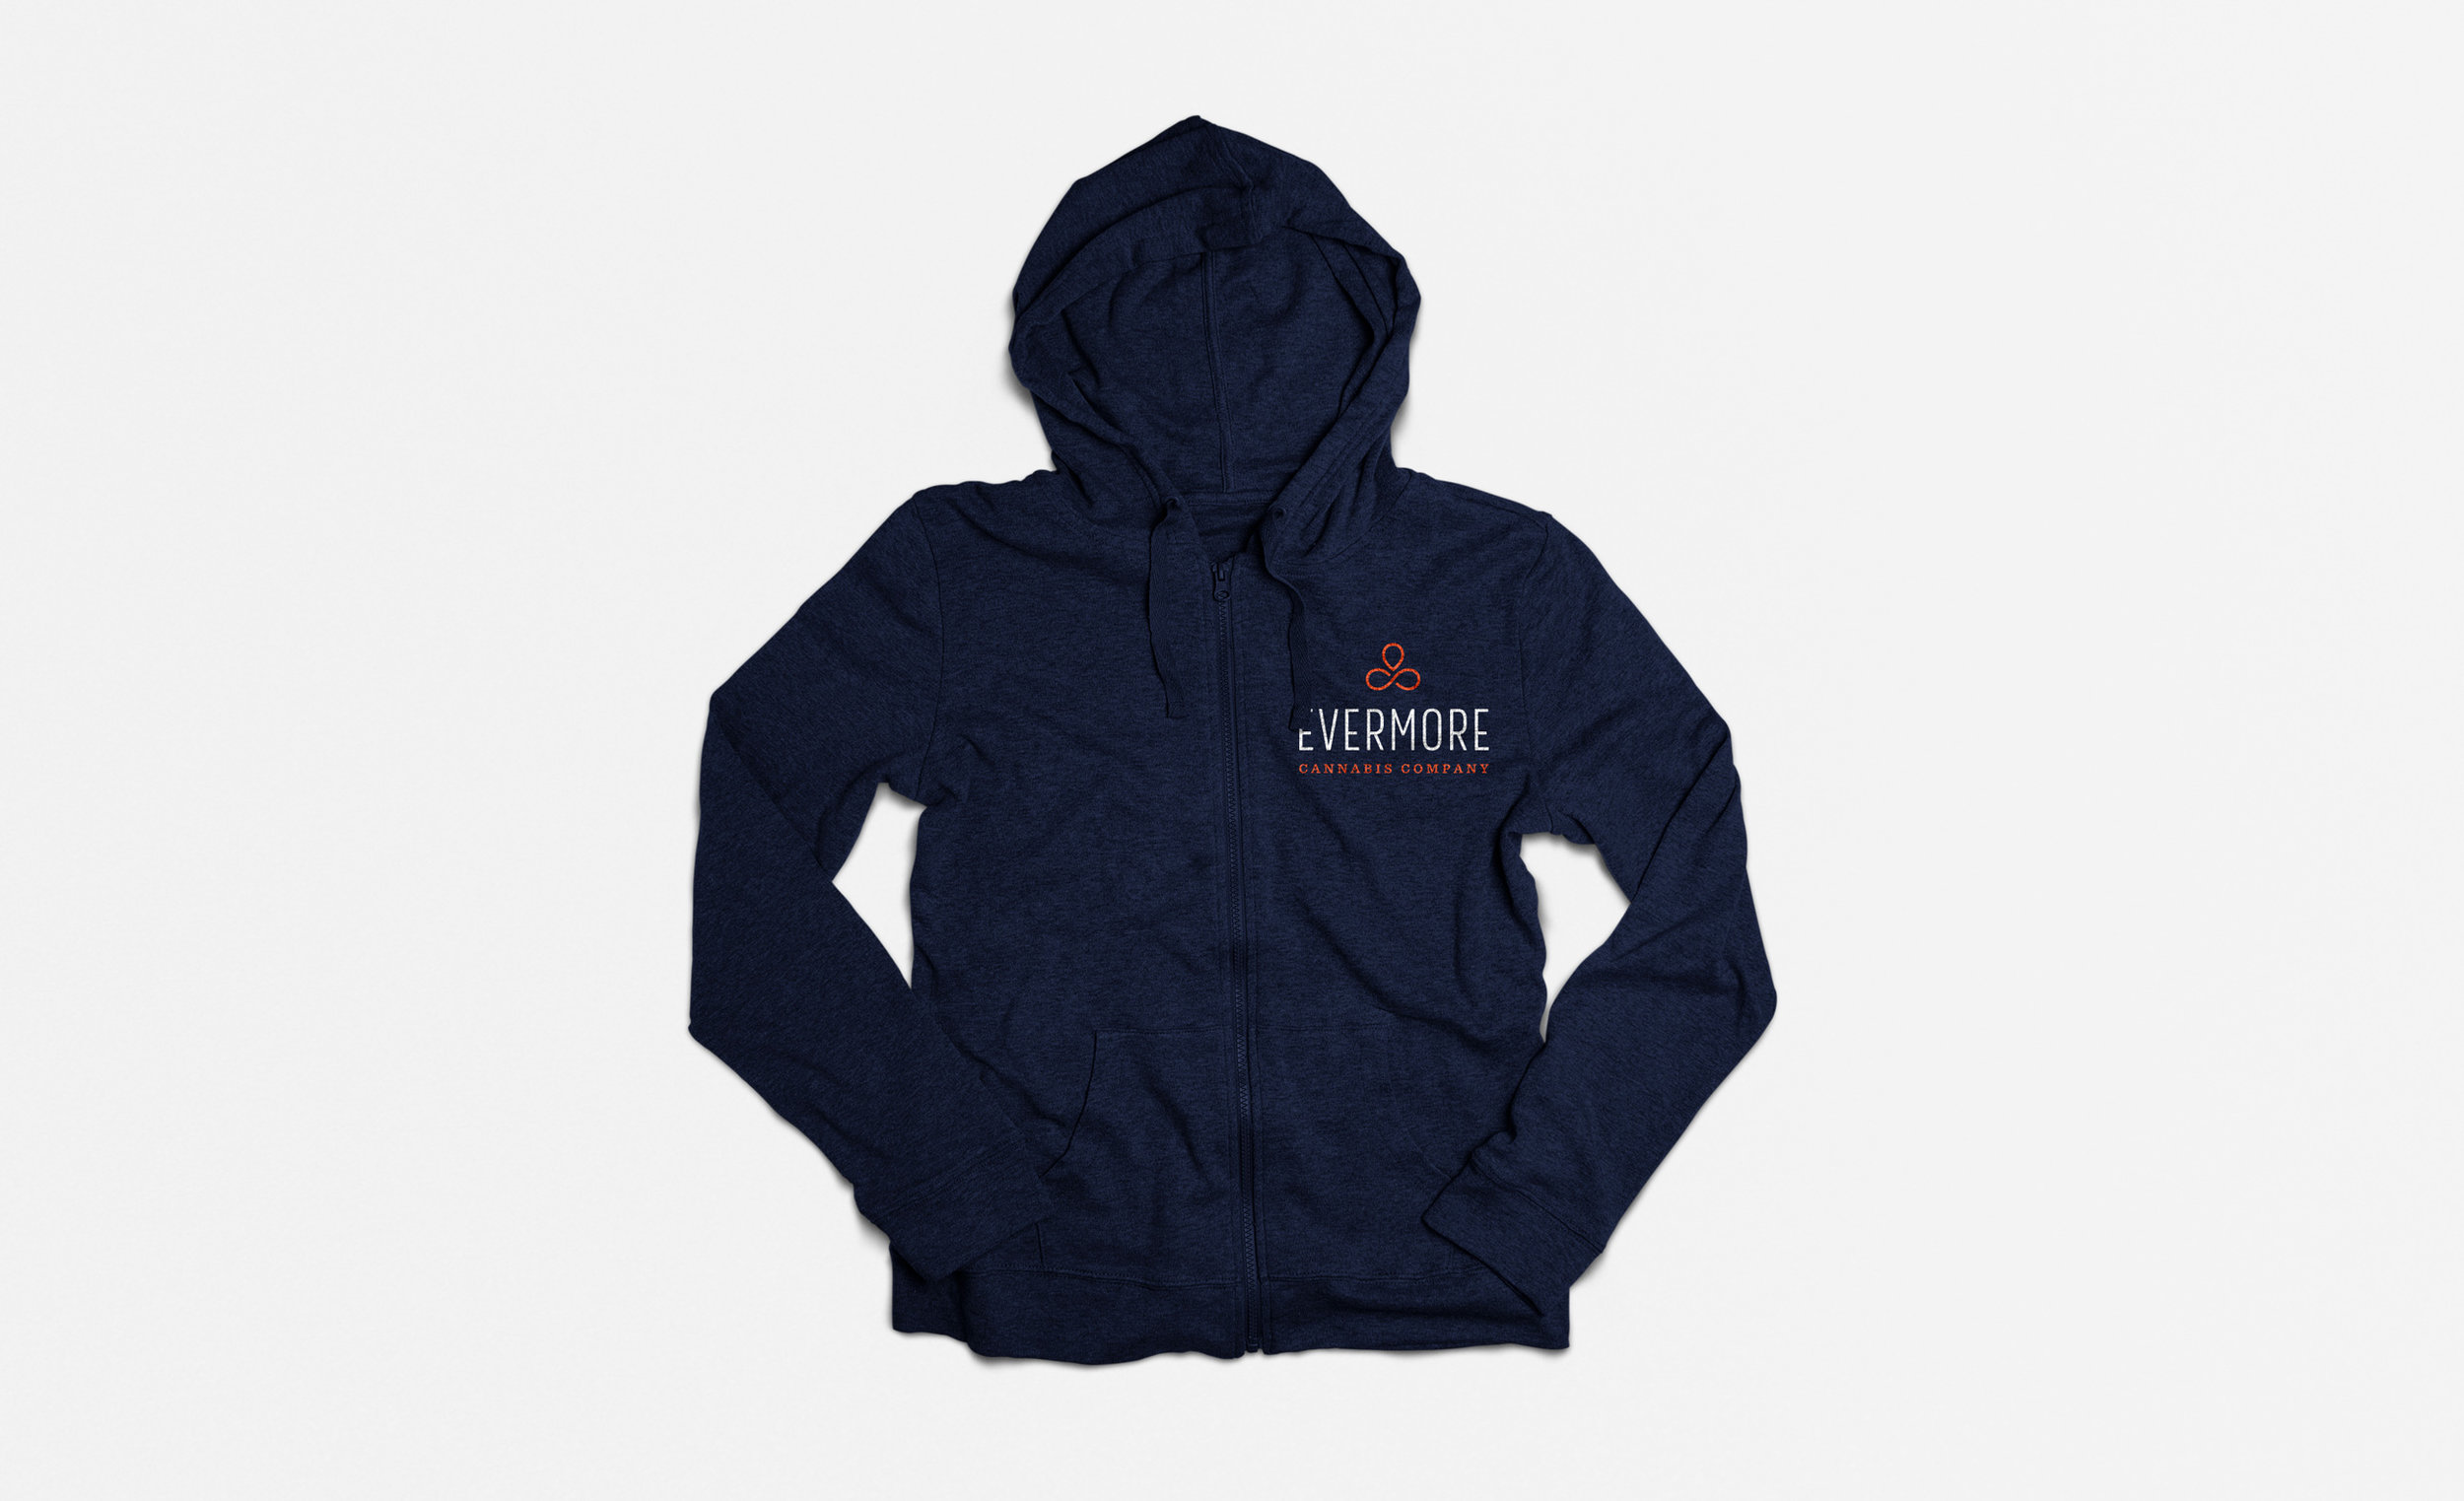 Evermore Cannabis Collective: Hoodie Design